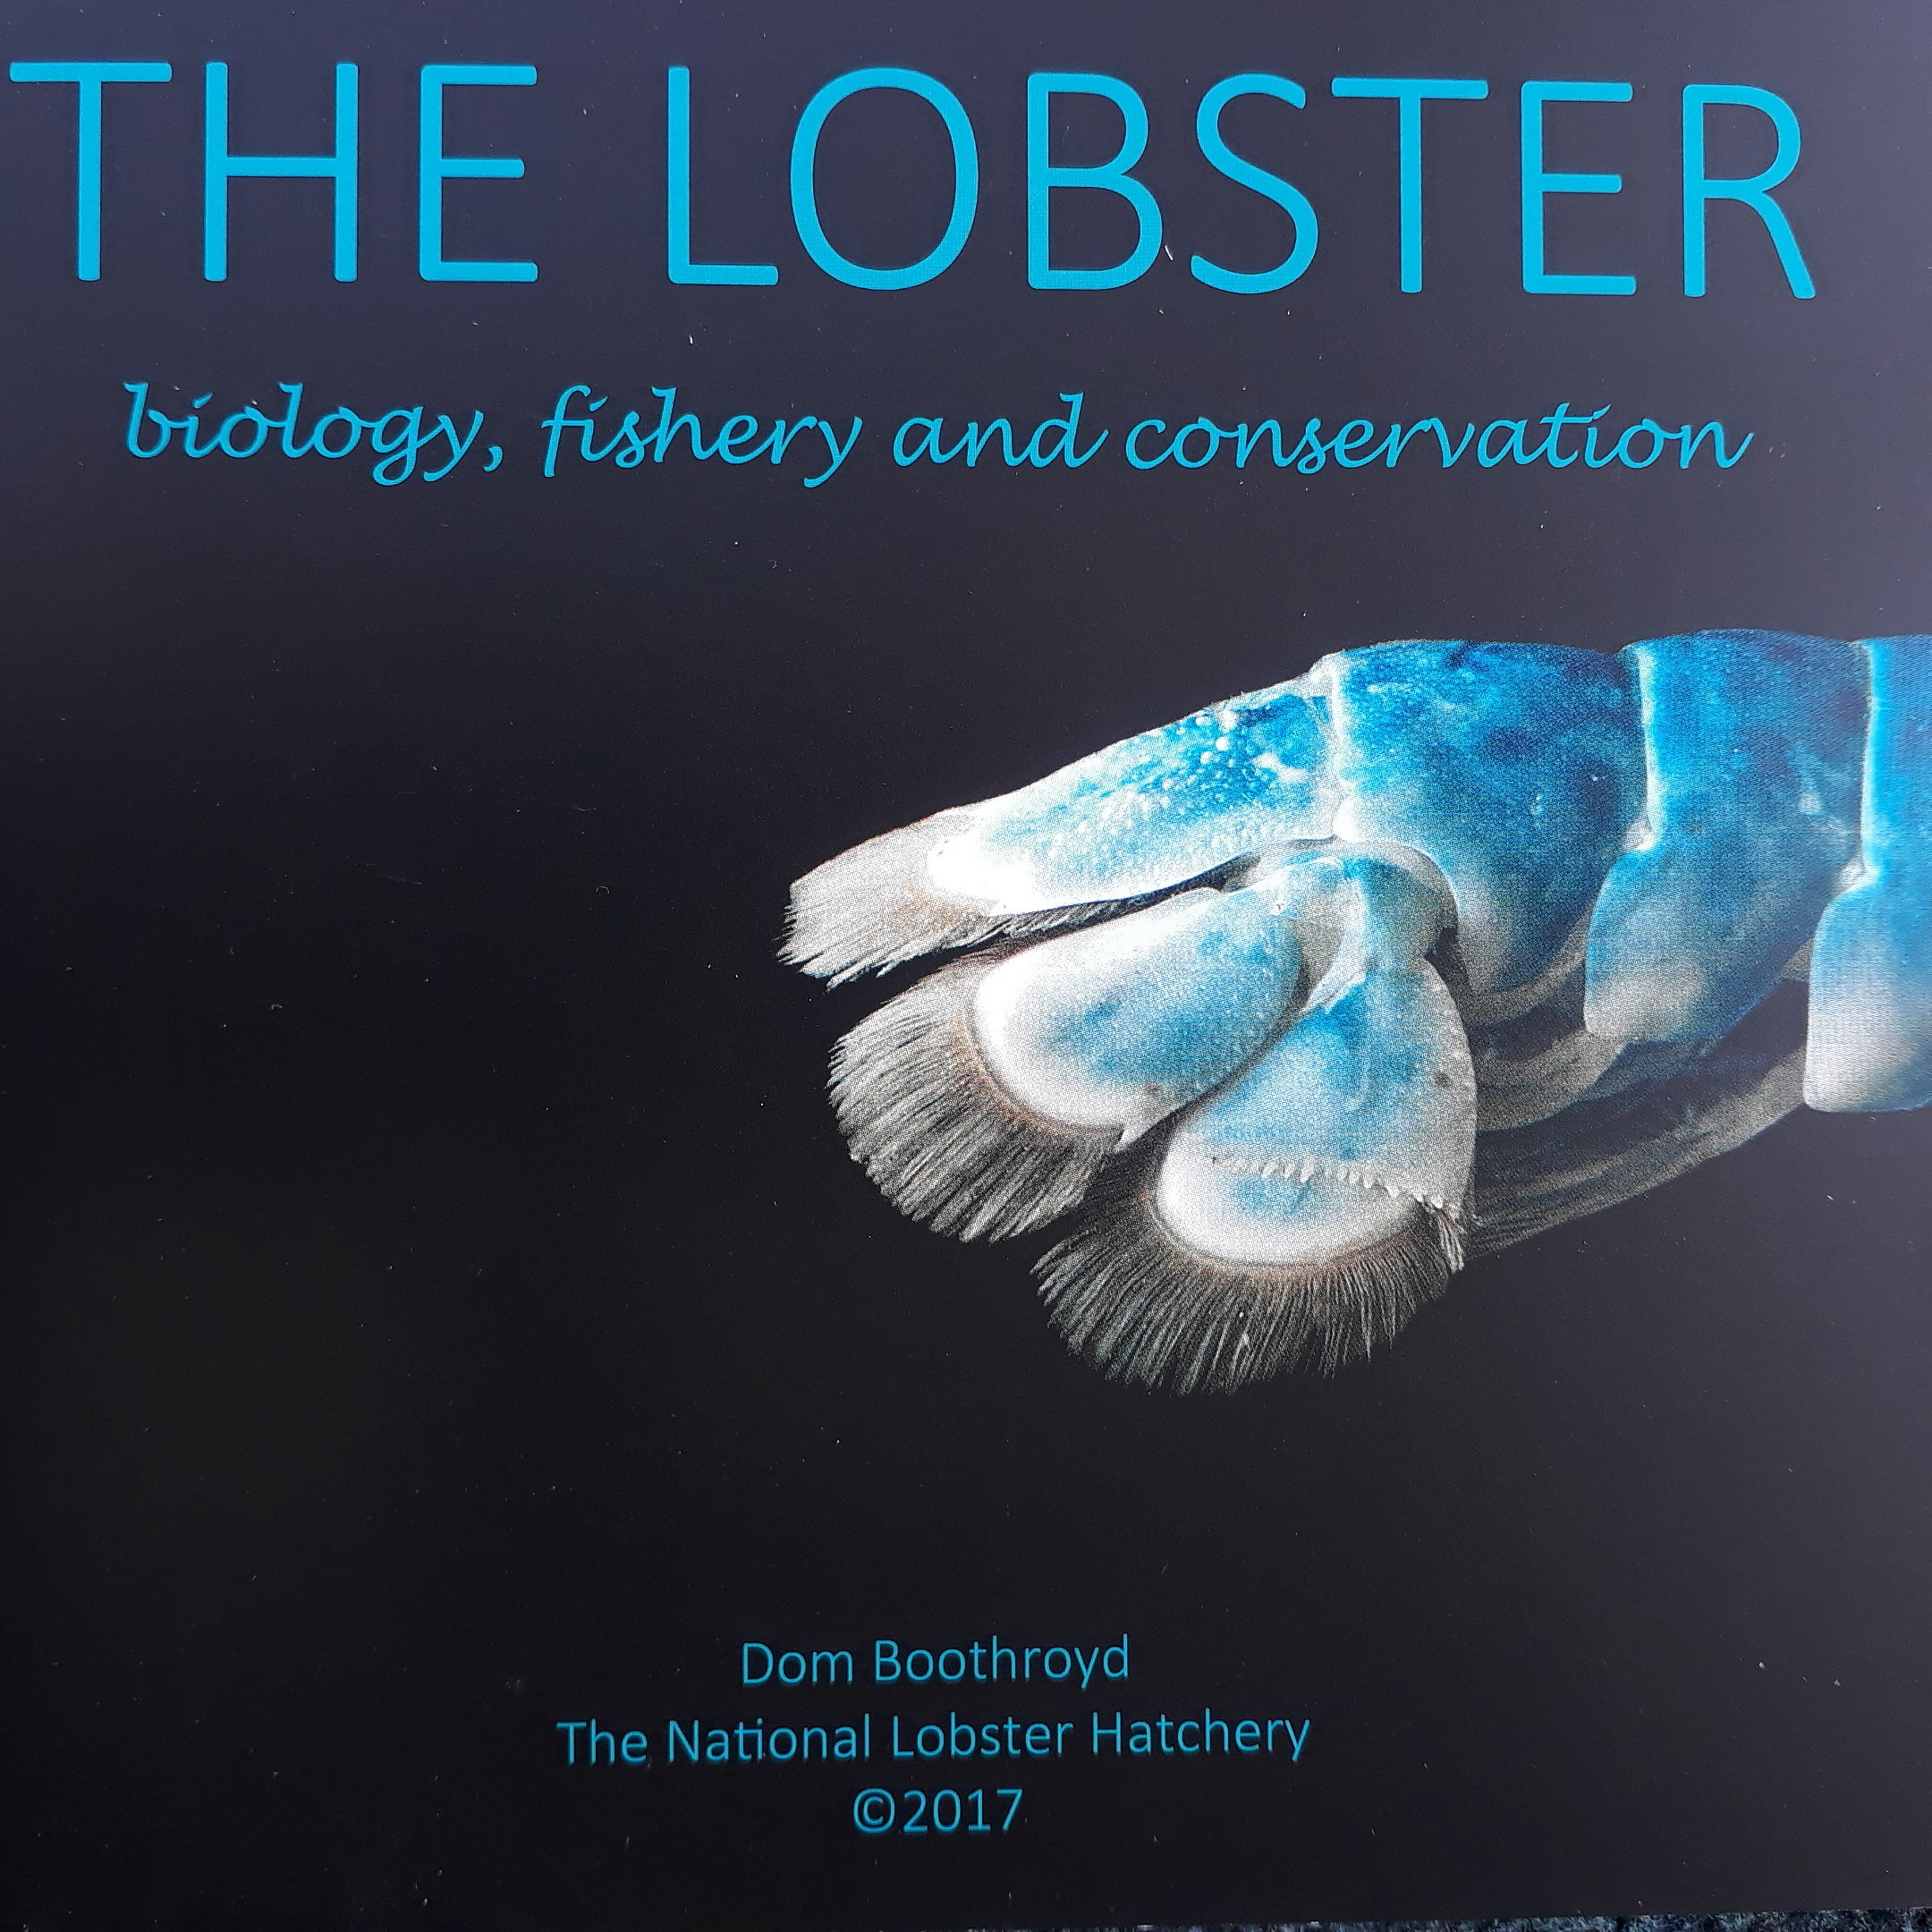 The Lobster - biology, fishery and conservation by Dom Boothroyd 00309